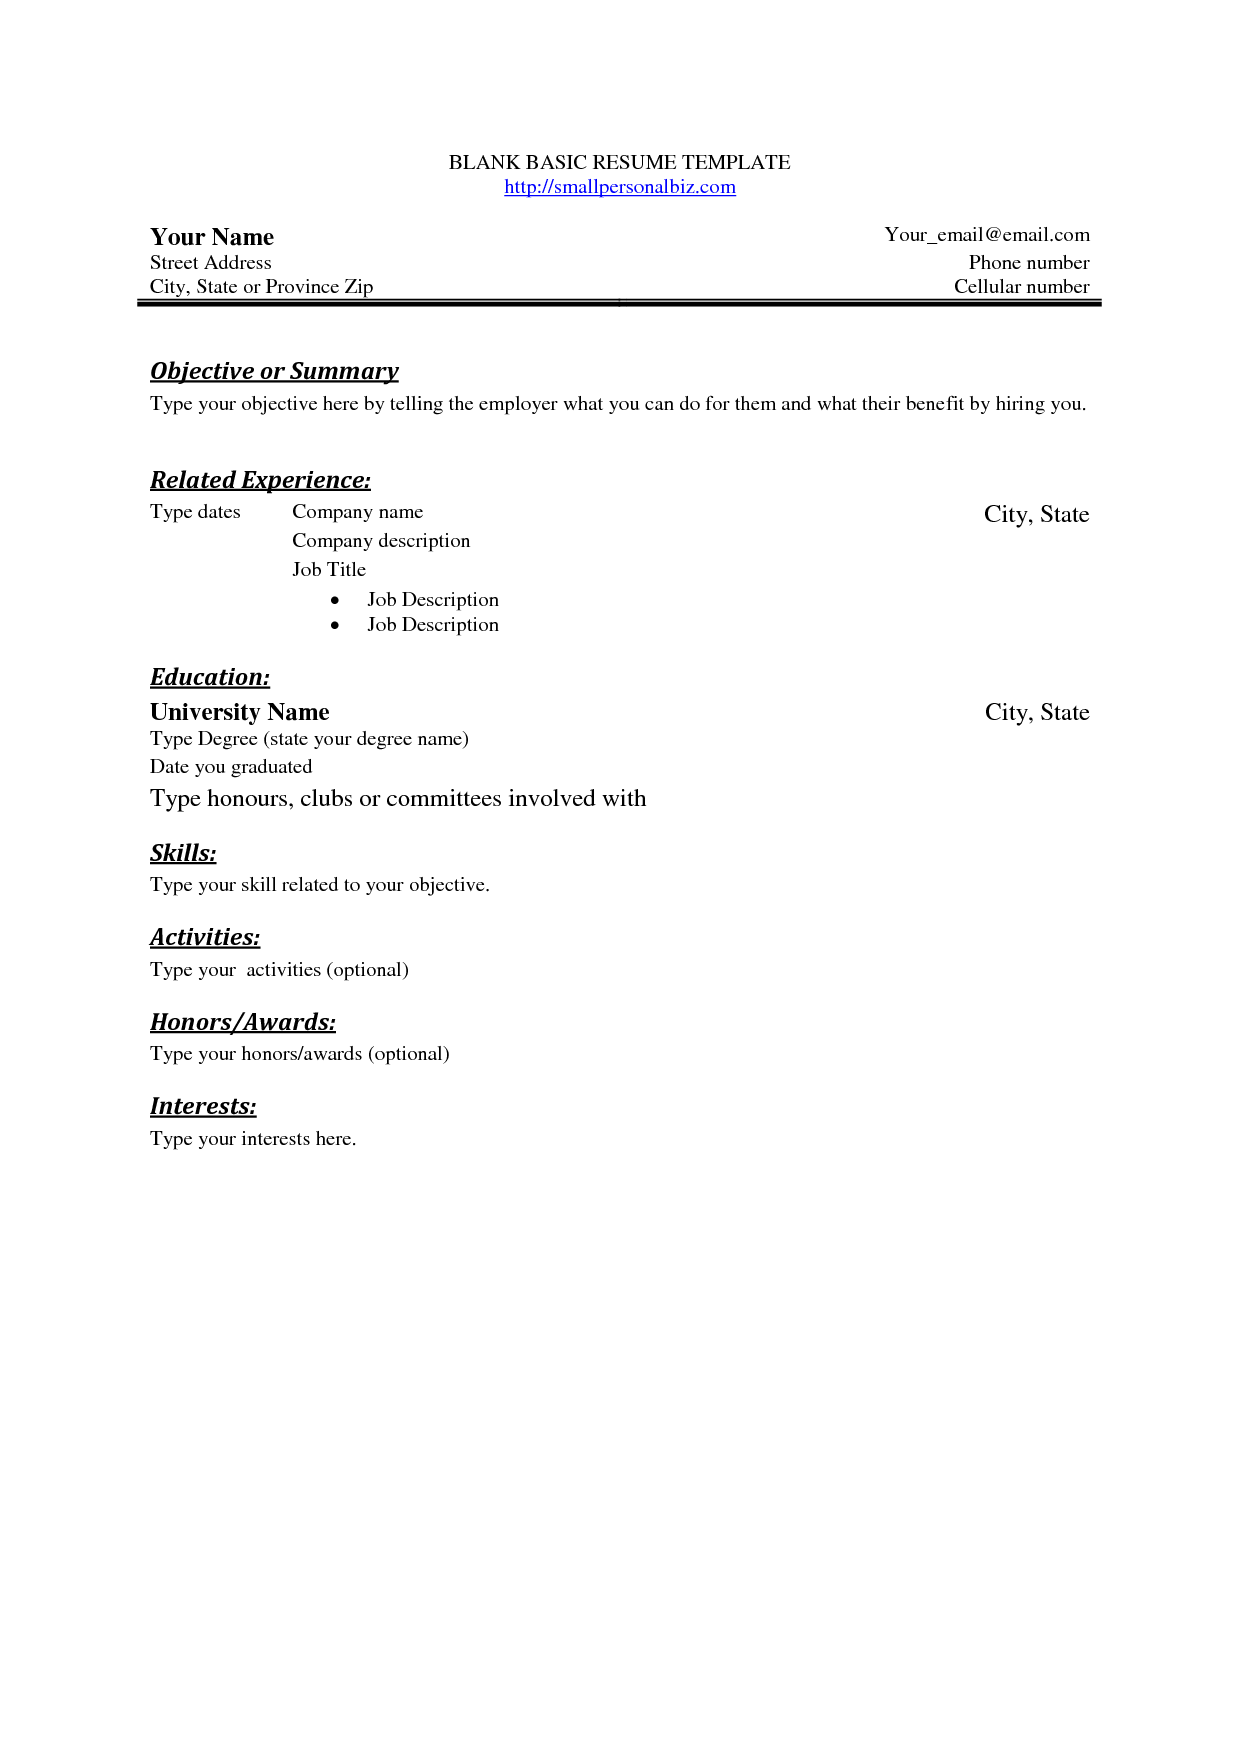 Simple Format For Resume Free Basic Blank Resume Template Free Basic Sample